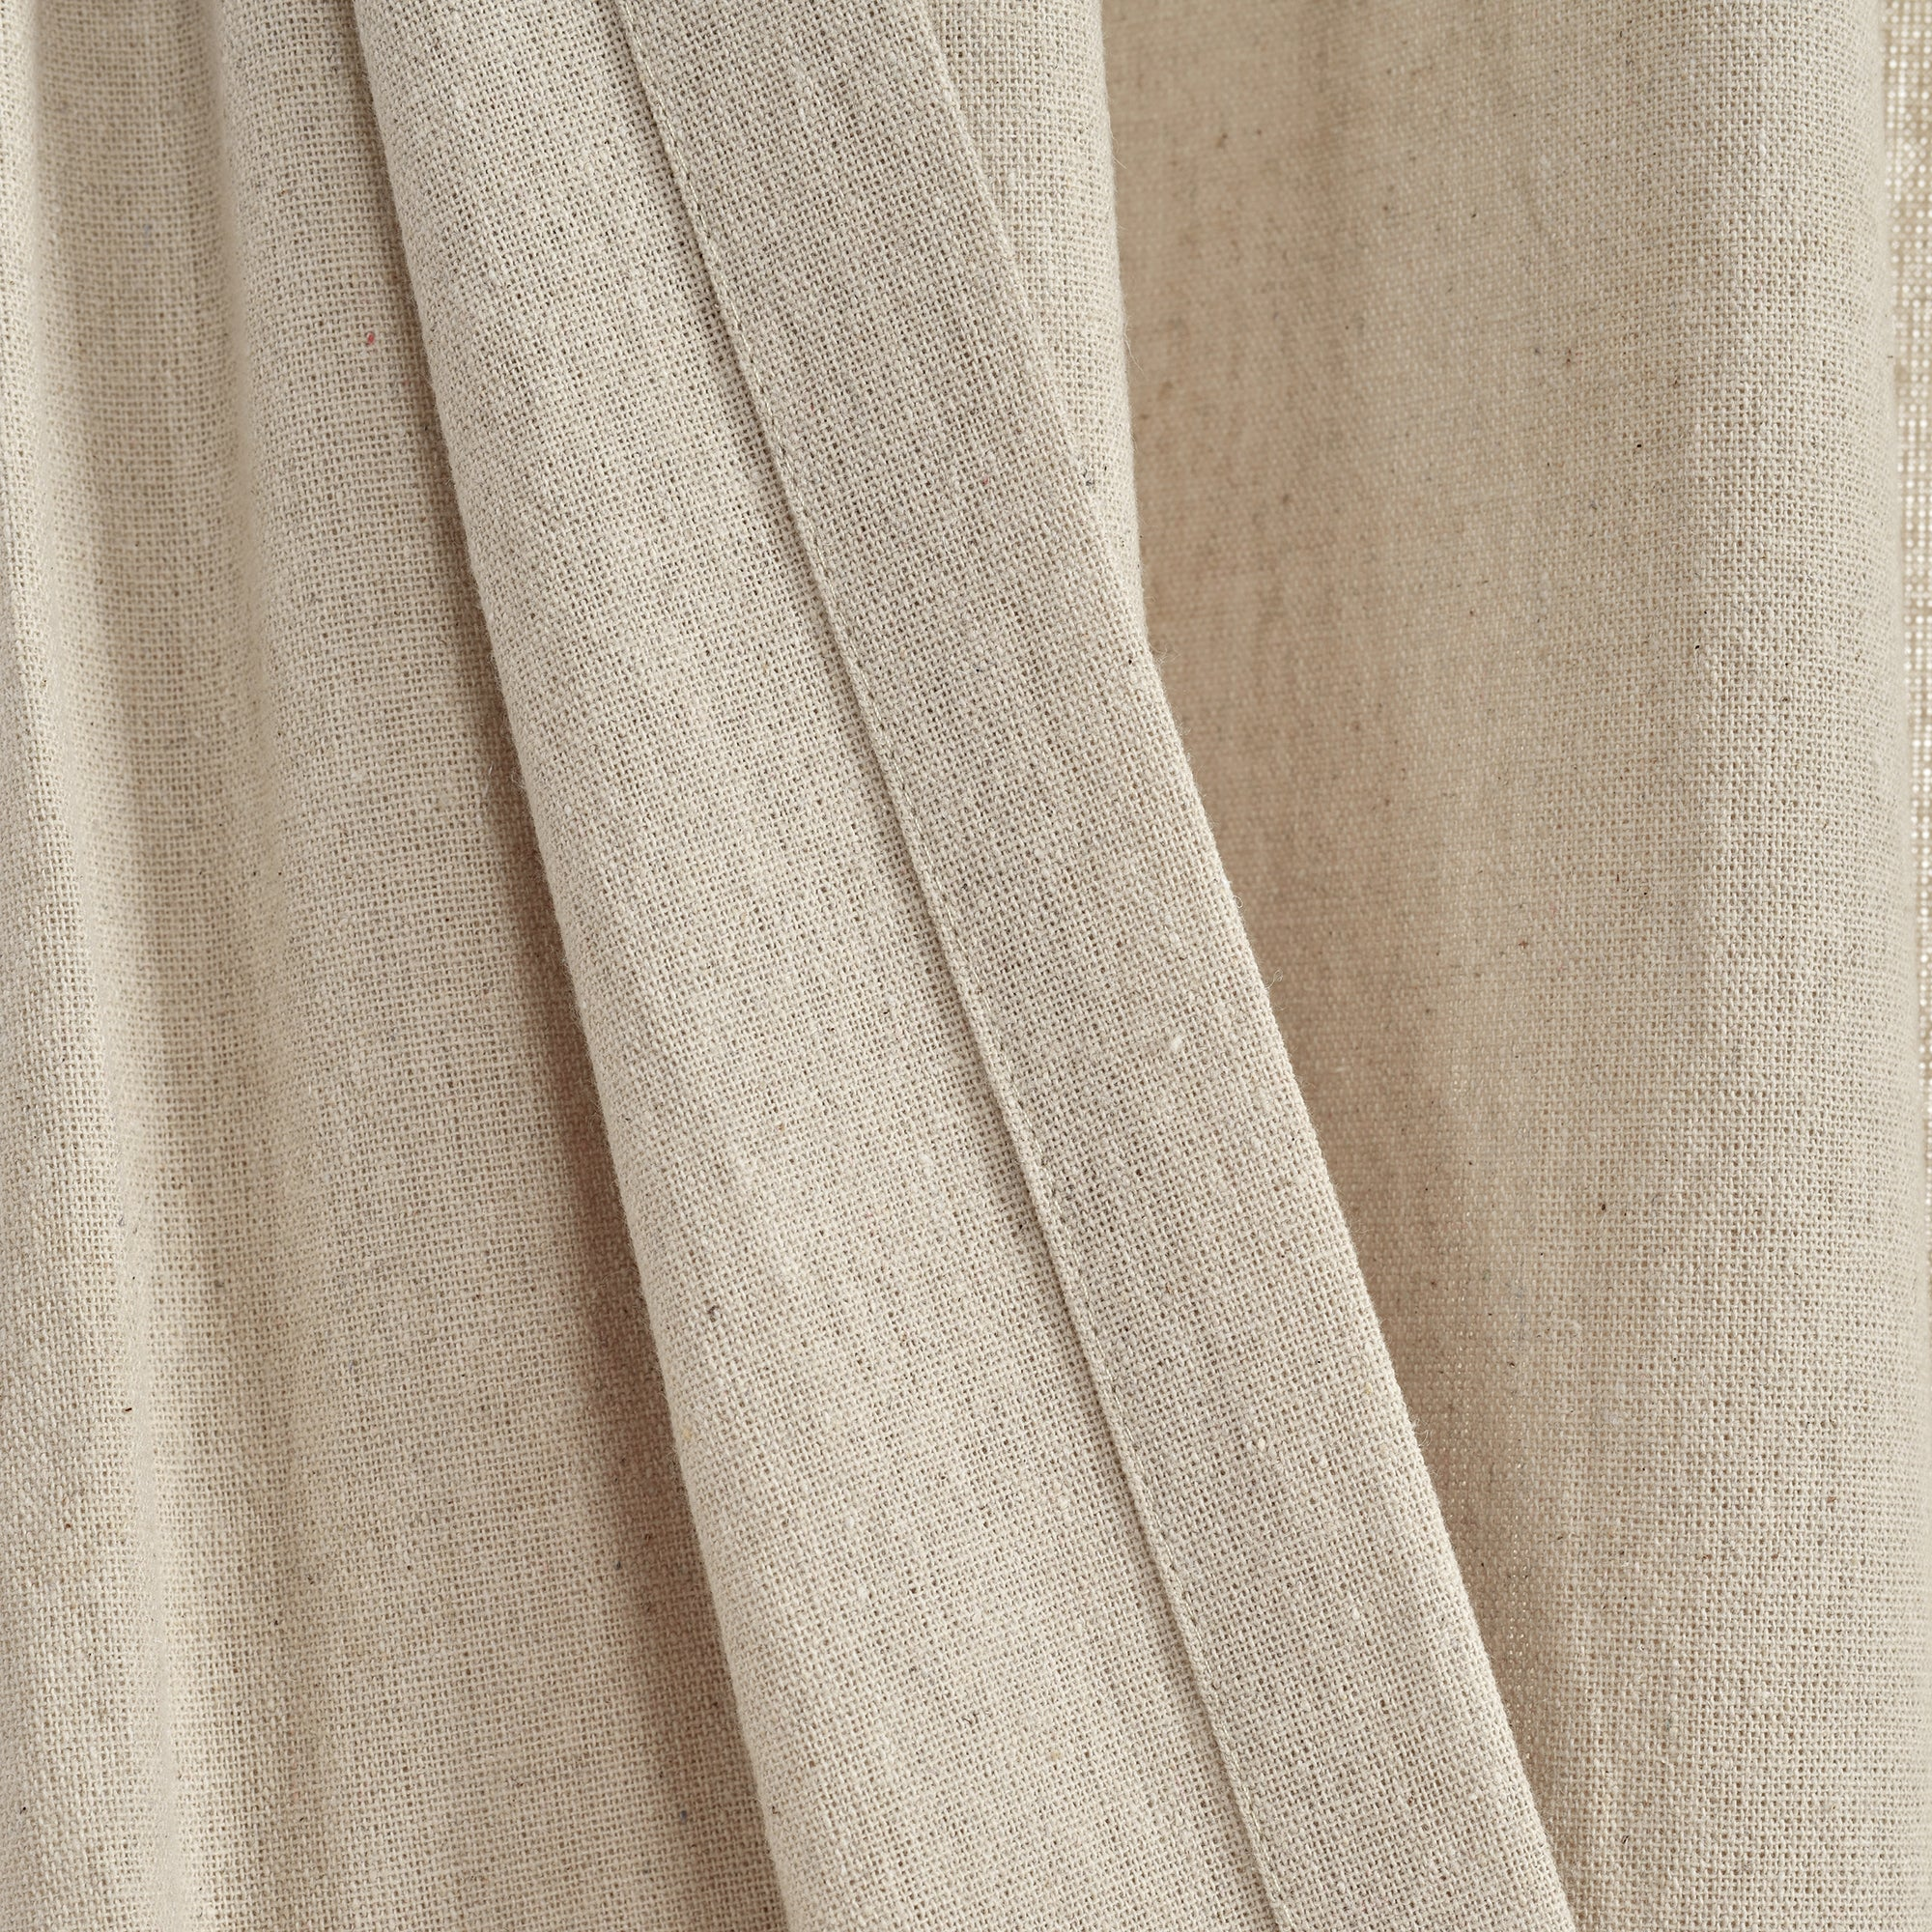 Linen Button Pinched Pleat Window Curtain Panel